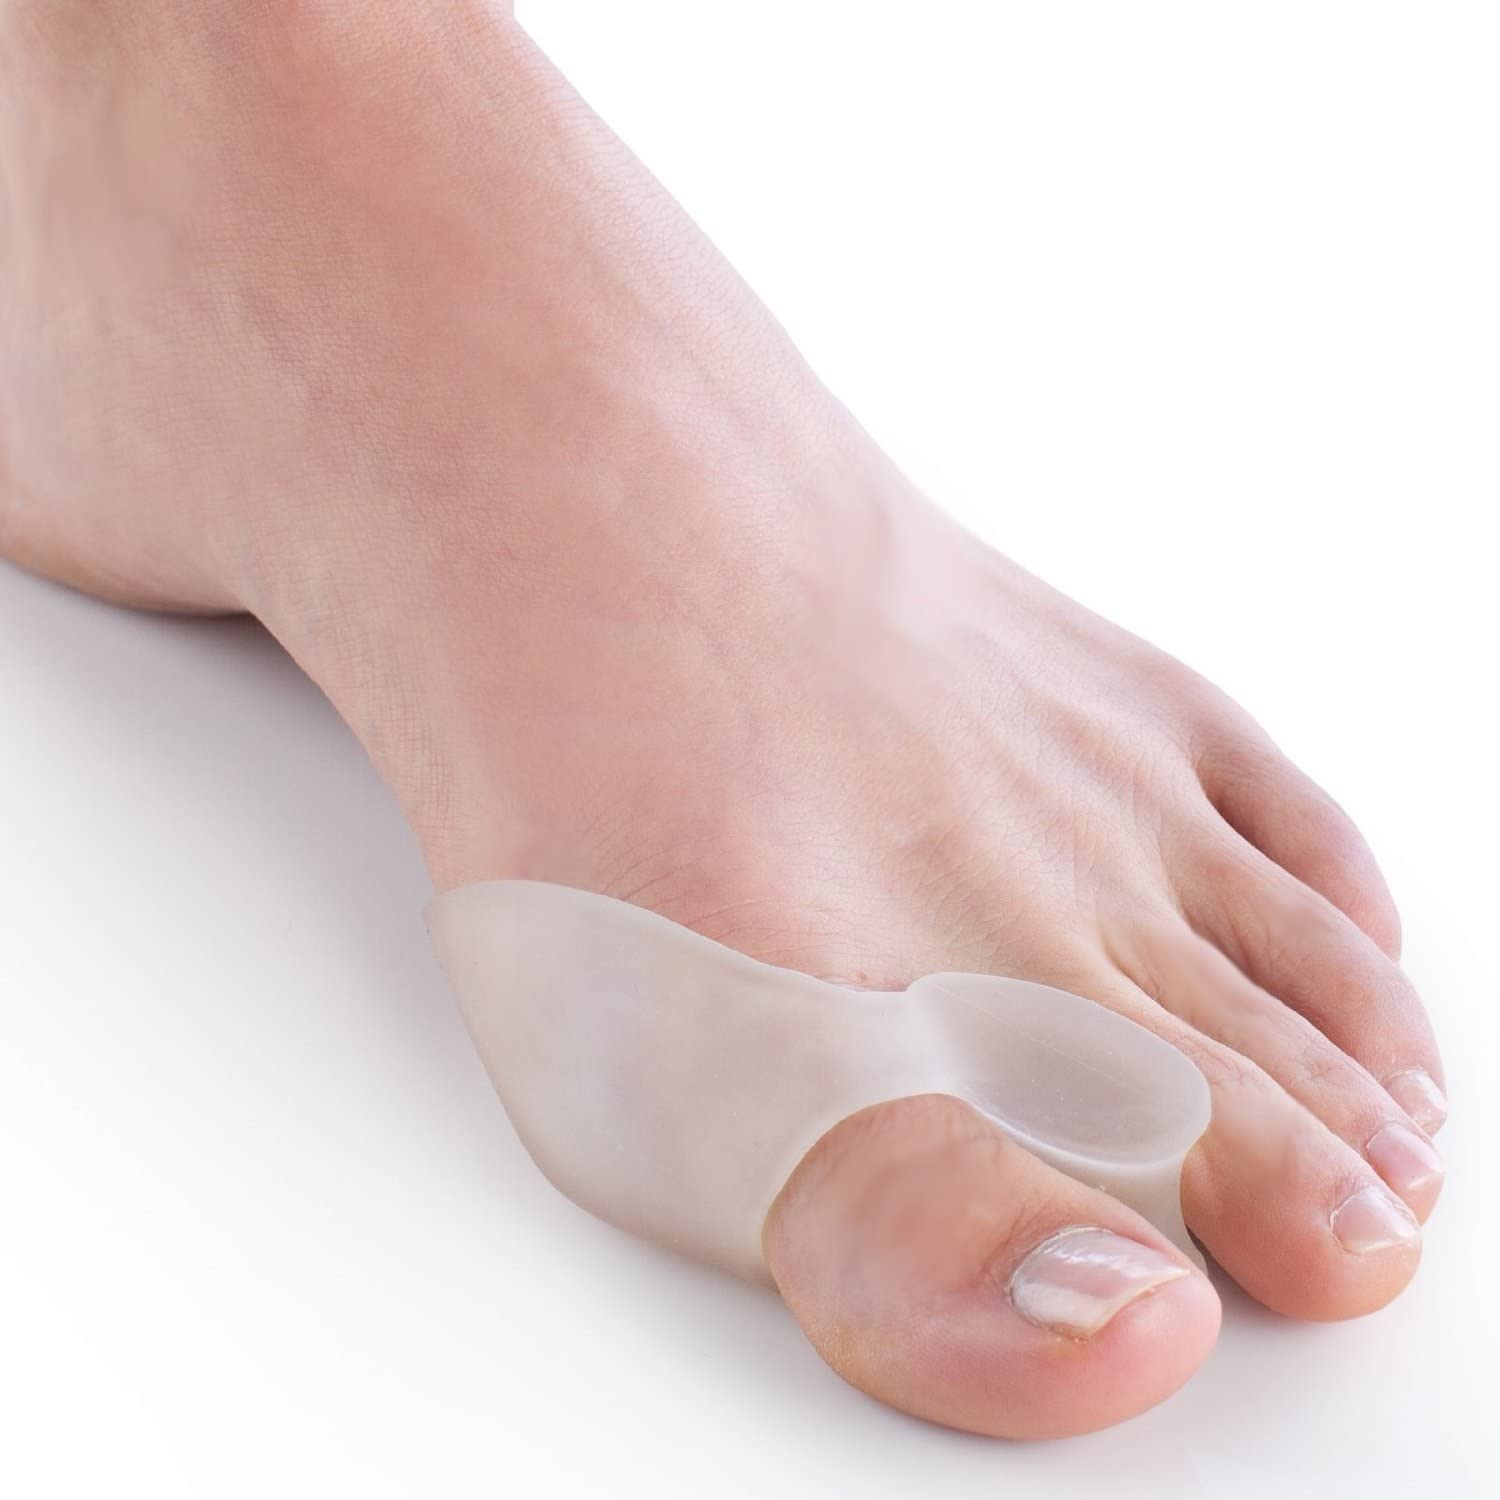 SPREADER PAIN REL. COMBINATION SILICONE GEL BUNION PROTECTOR AND TOE SEPARATOR